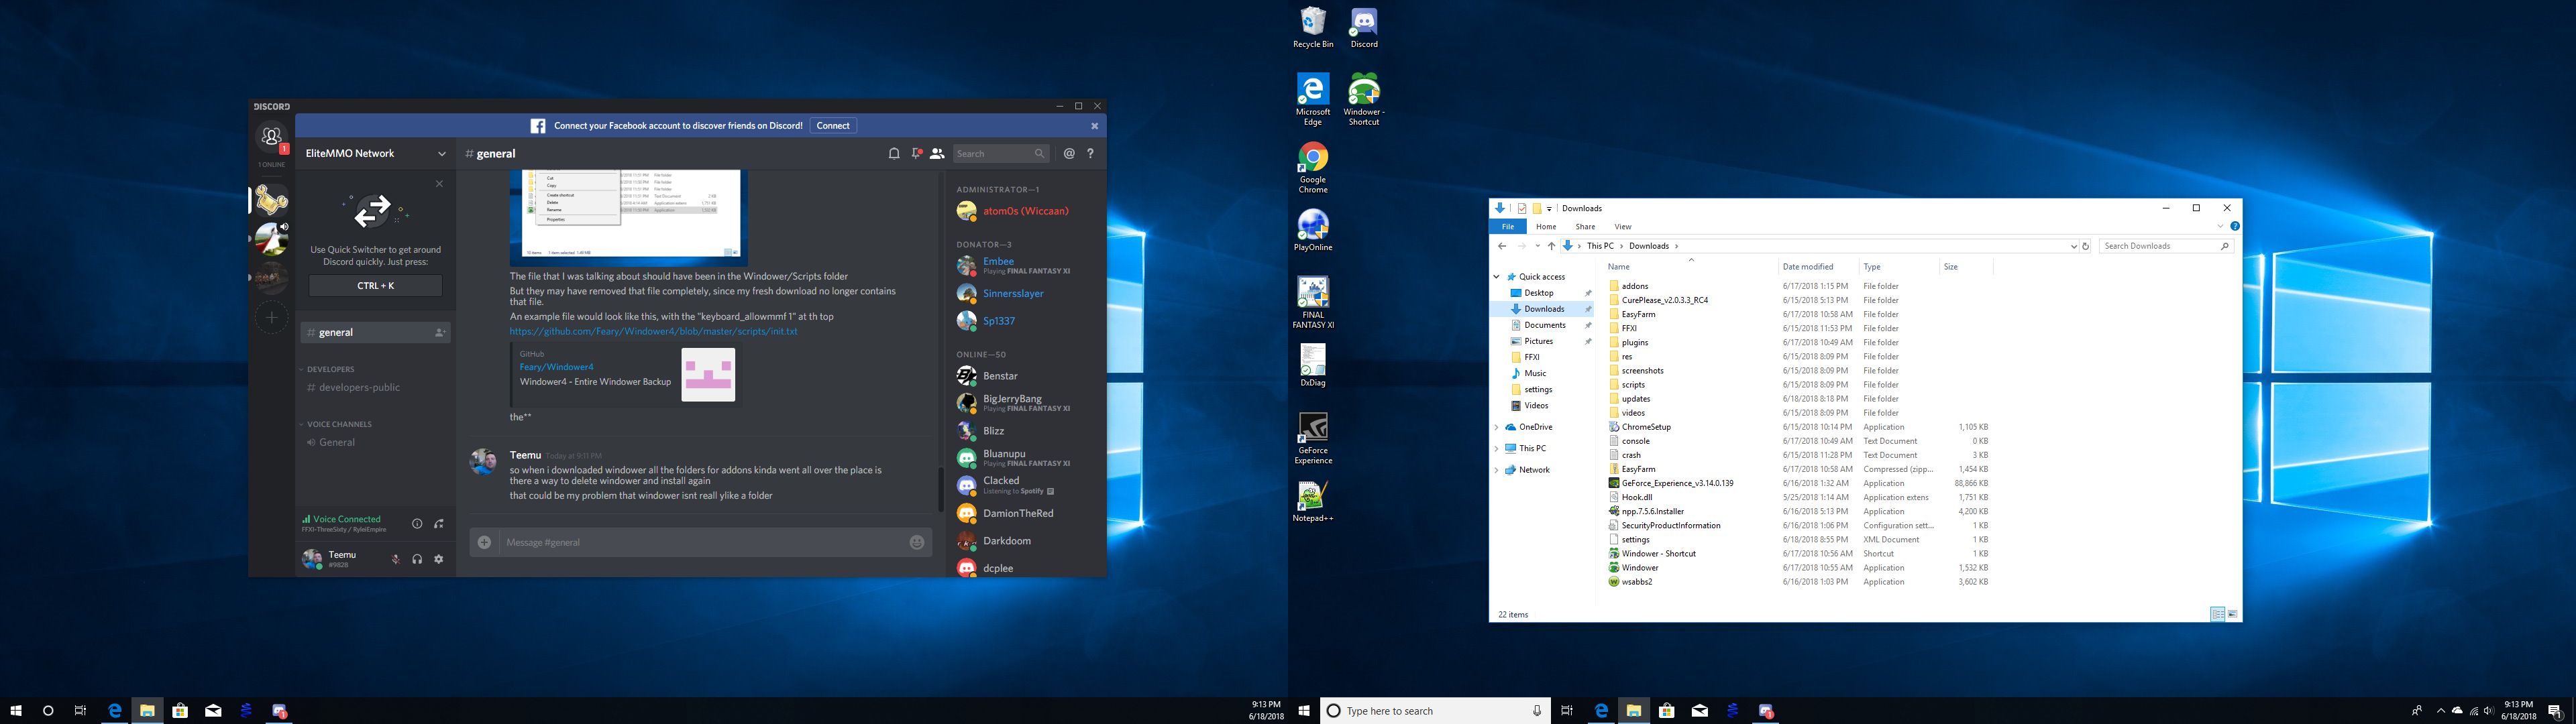 EasyFarm doesn't seem to work with Windower · Issue #355